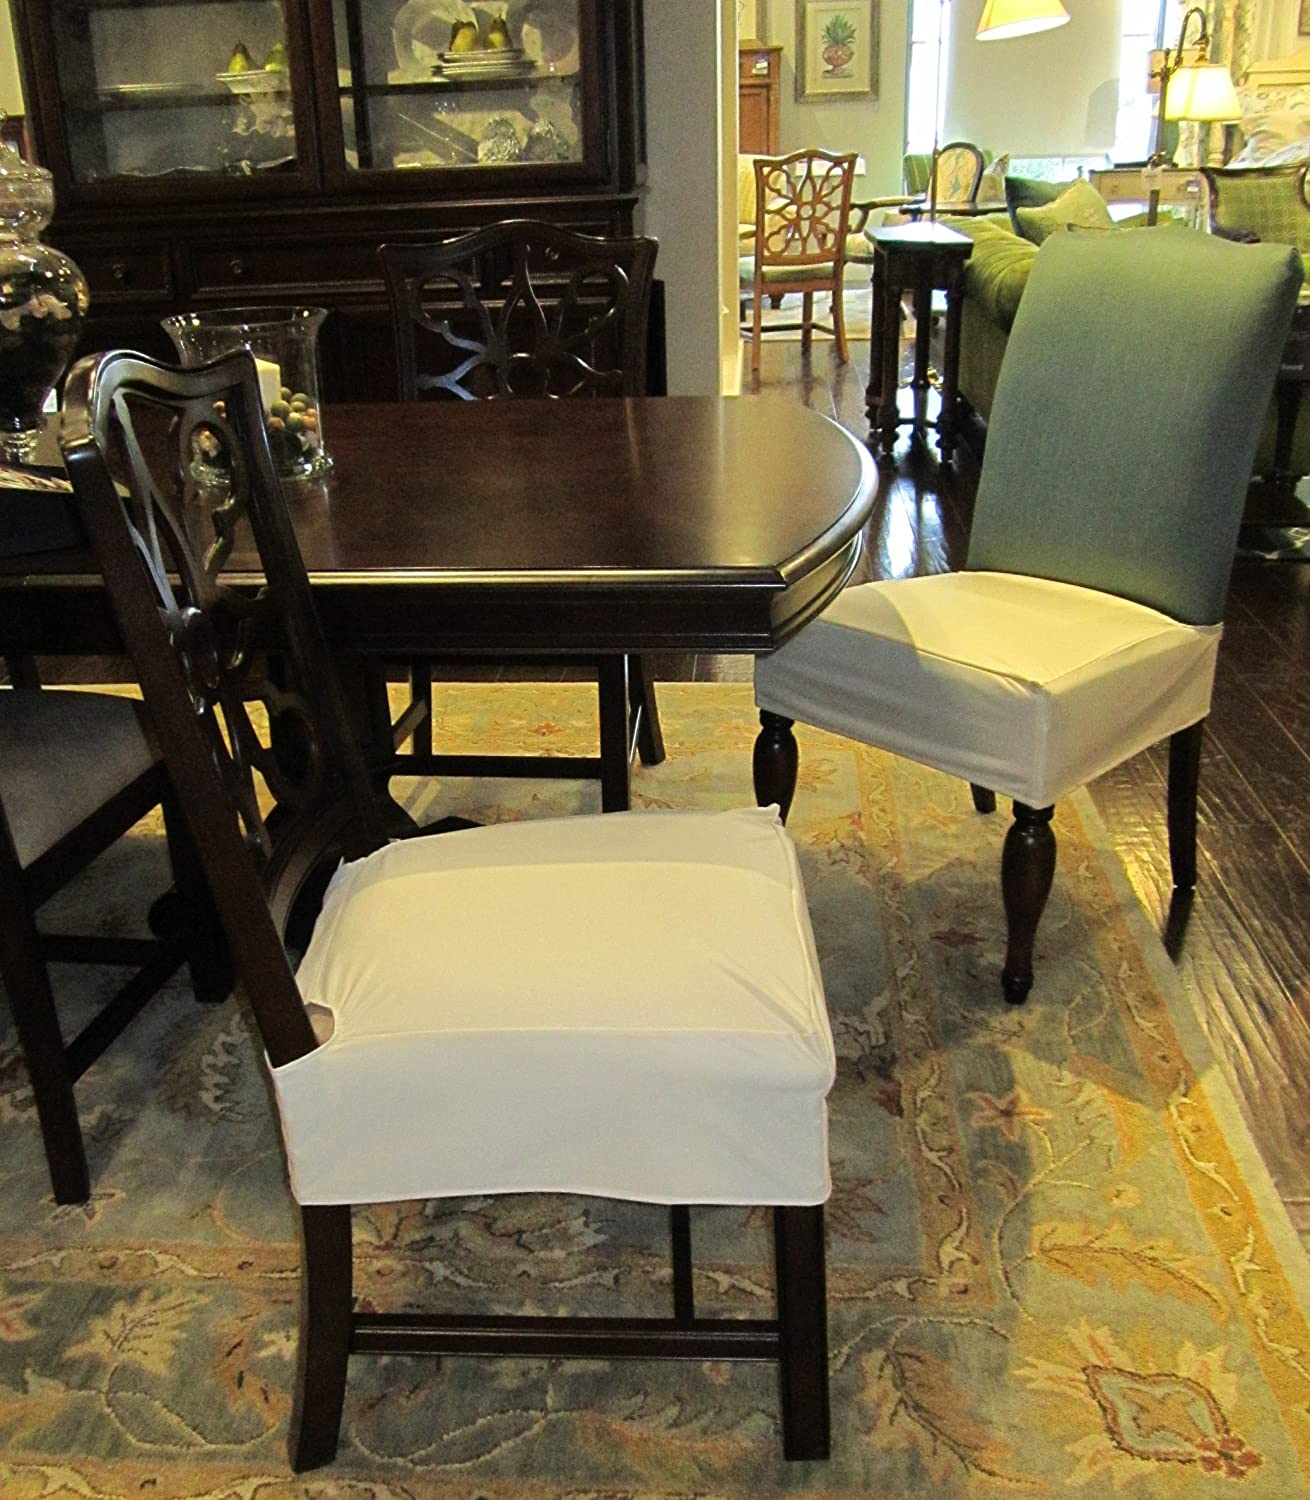 Amazon.com: Everyday Elegance Kitchen & Dining Chair Covers ...